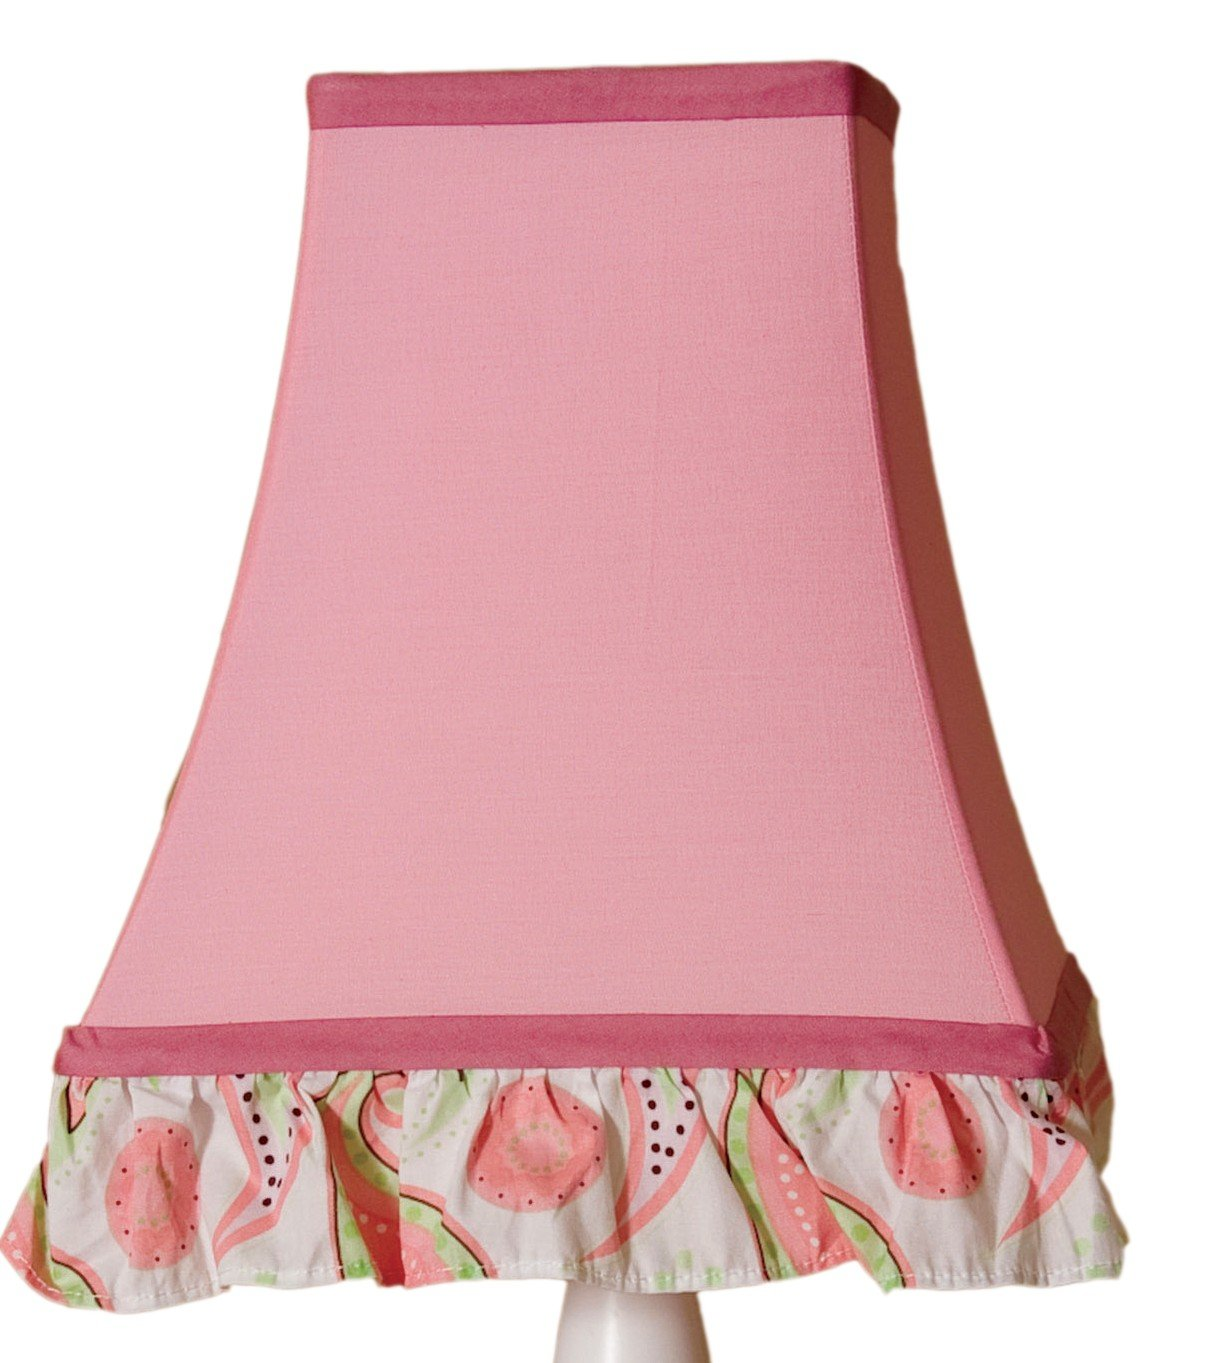 Pam Grace Creations Lamp Shade, Paisley LS PAISLEY